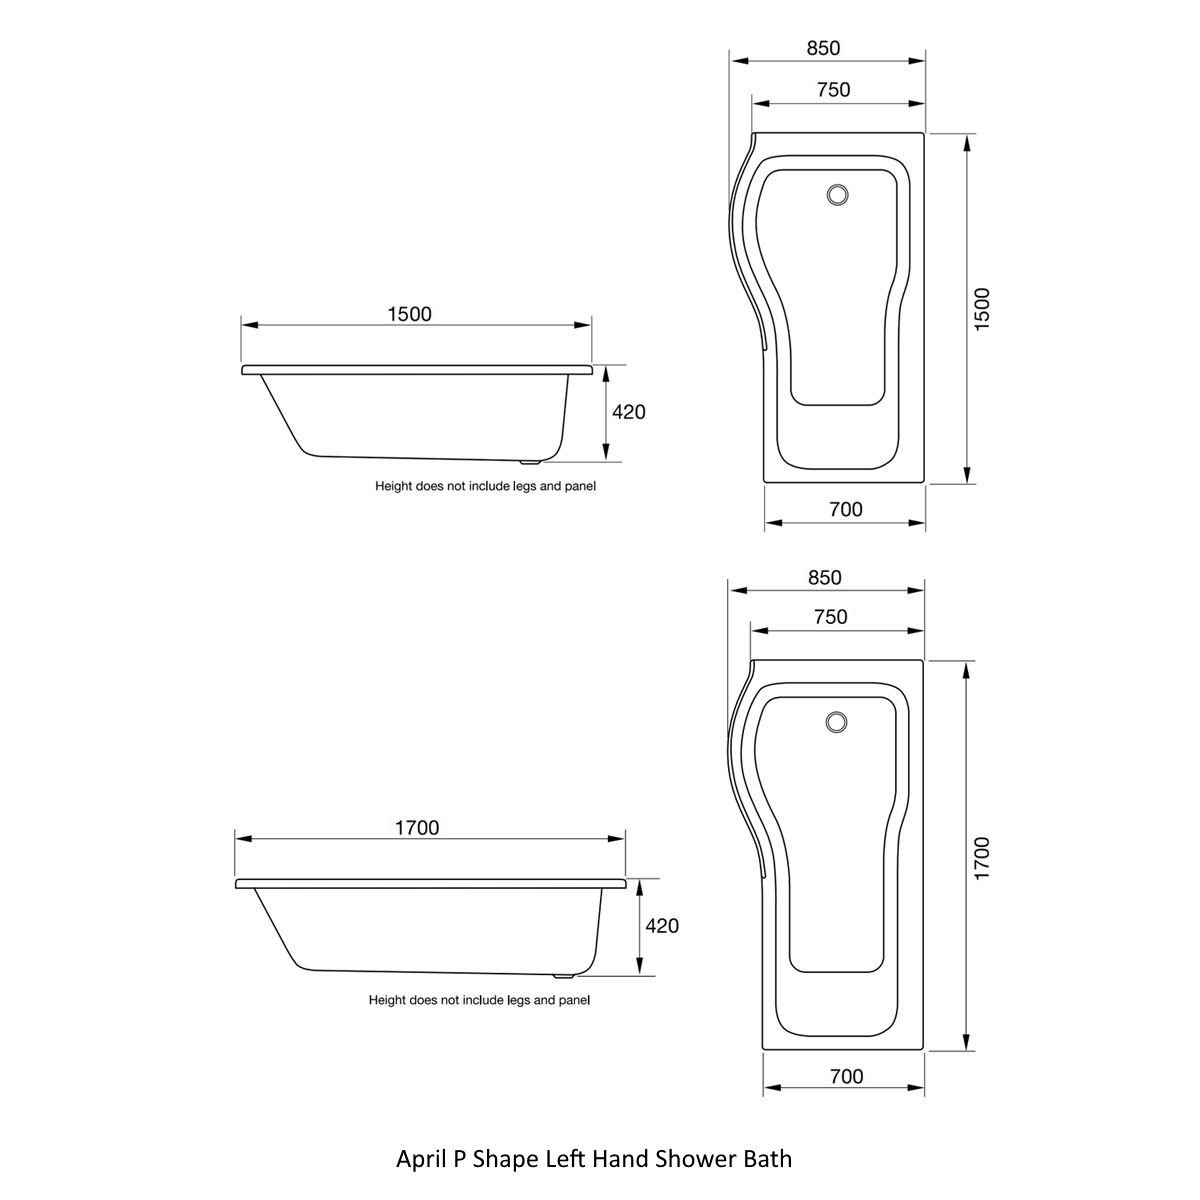 April P Shape Left Hand Shower Bath Drawing Dimensions